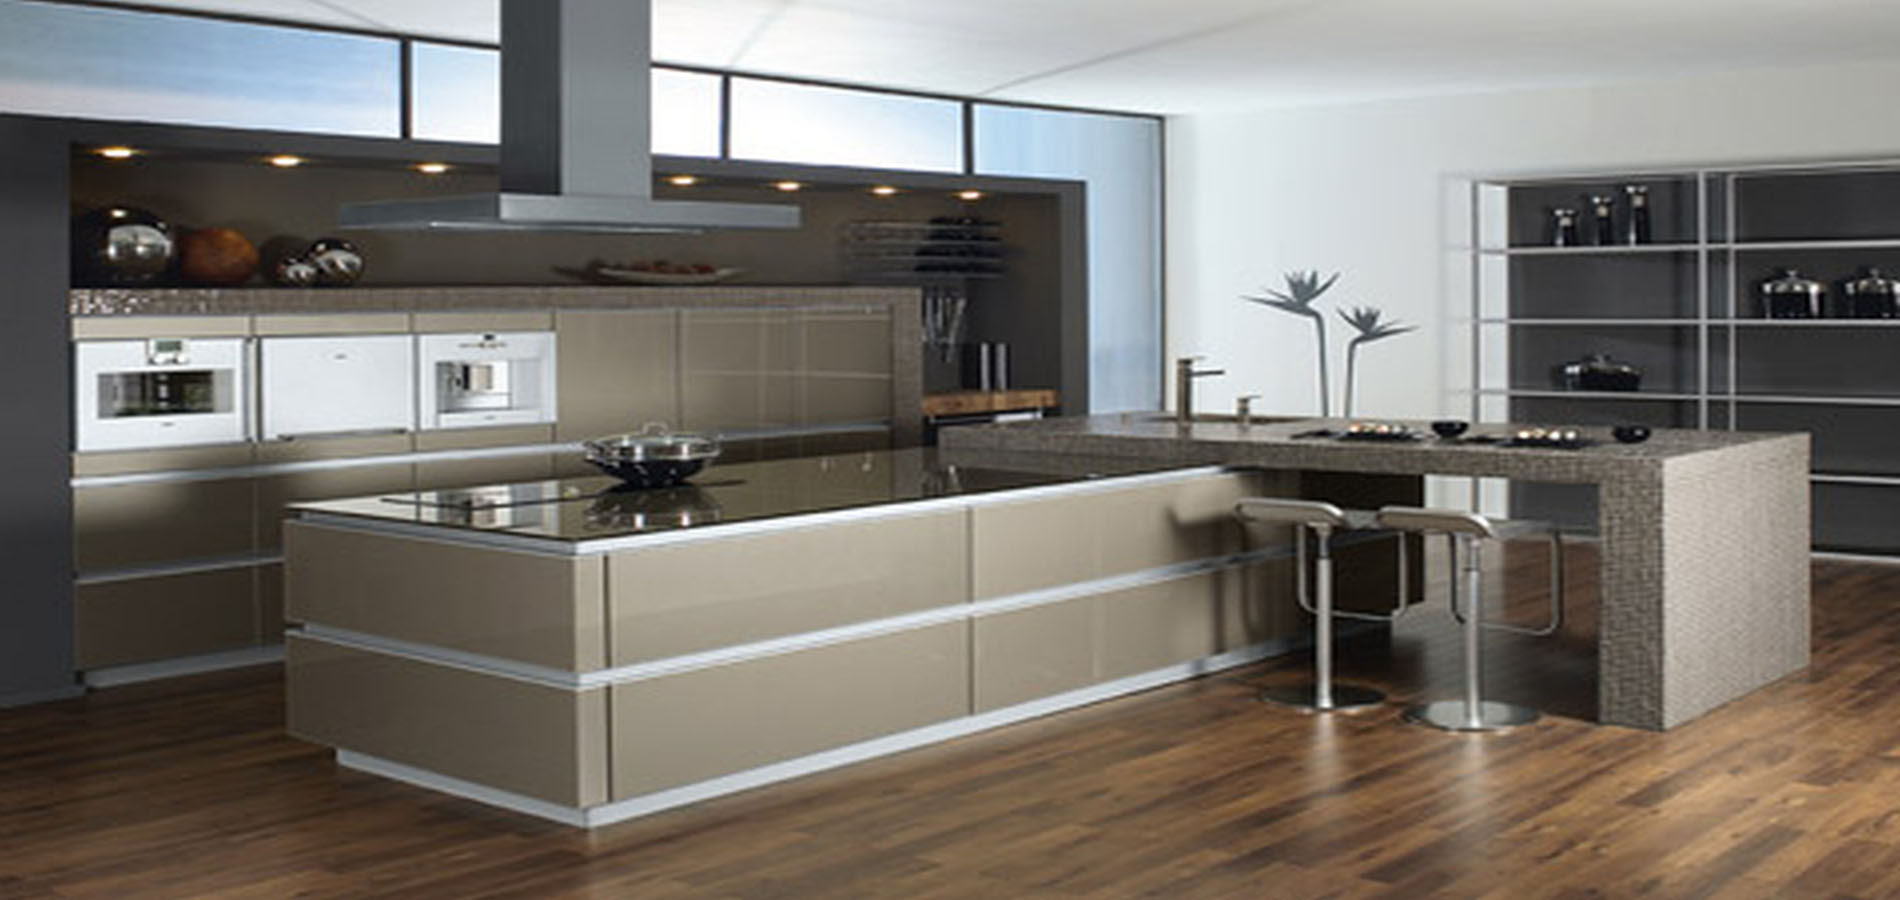 Cheap Kitchen Cabinet Malaysia | Great Design & Functional